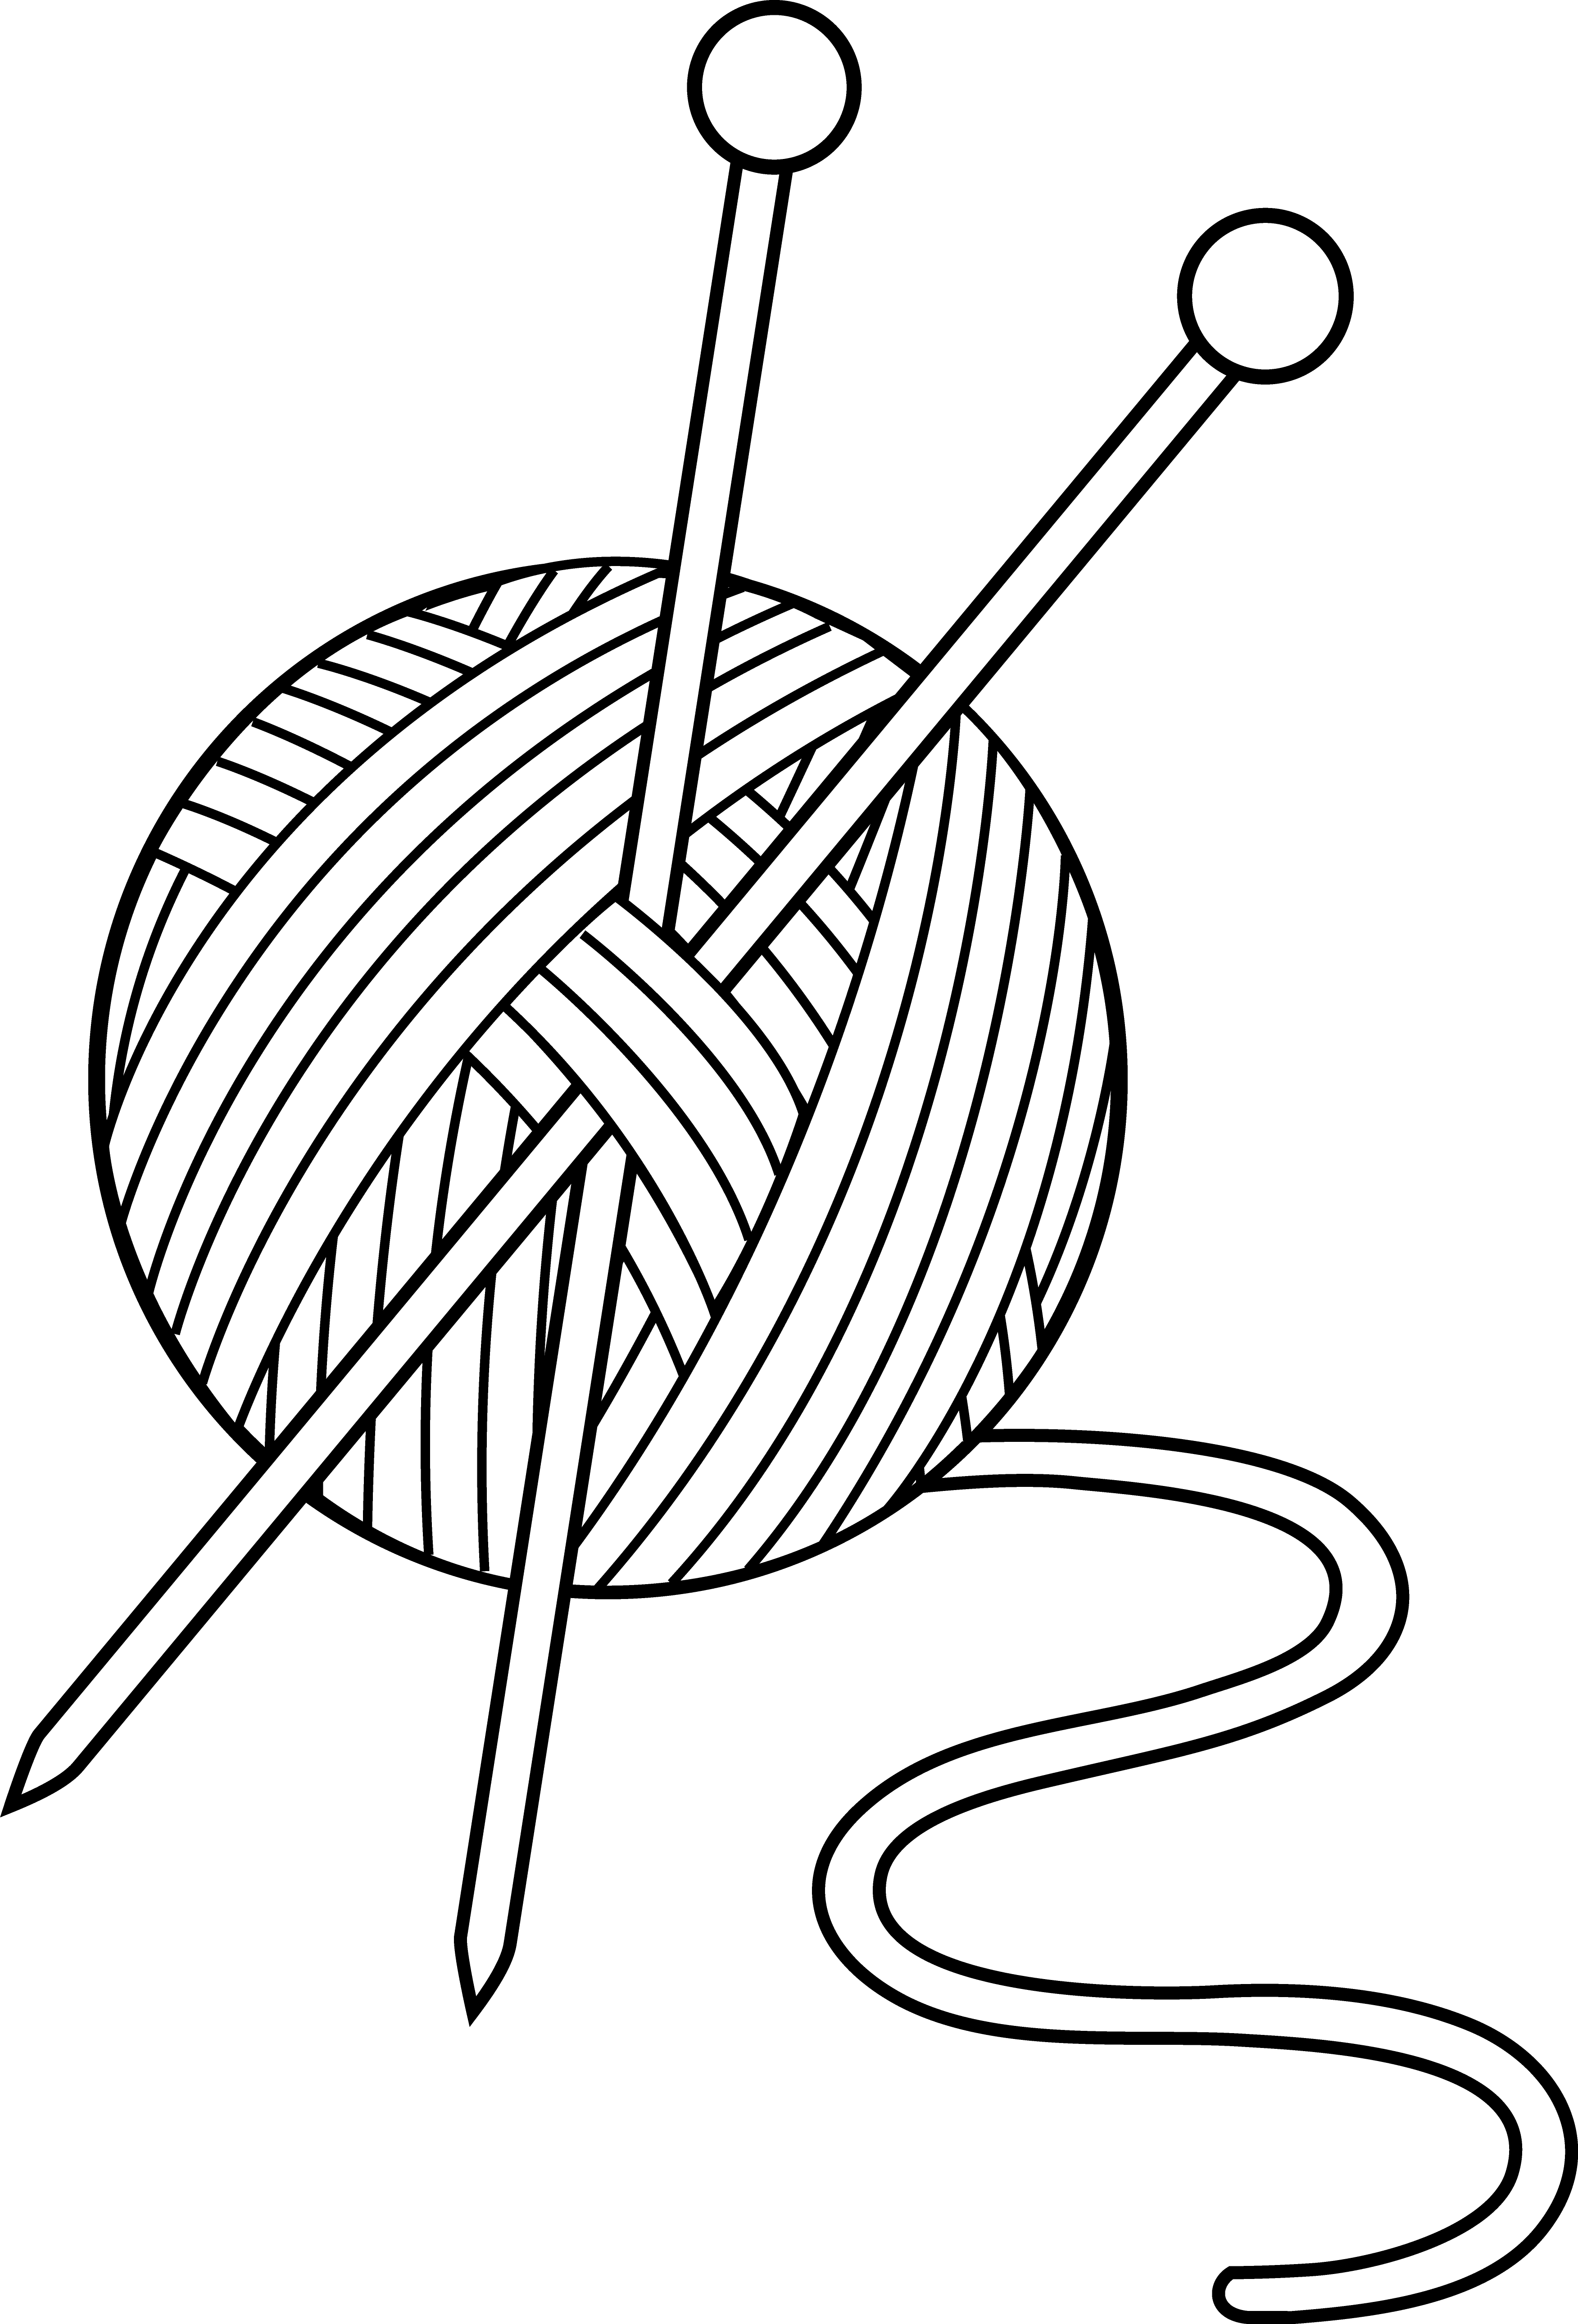 Cross and faith black and white clipart png black and white Black and White Knitting Set - Free Clip Art | bildites | Pinterest ... png black and white